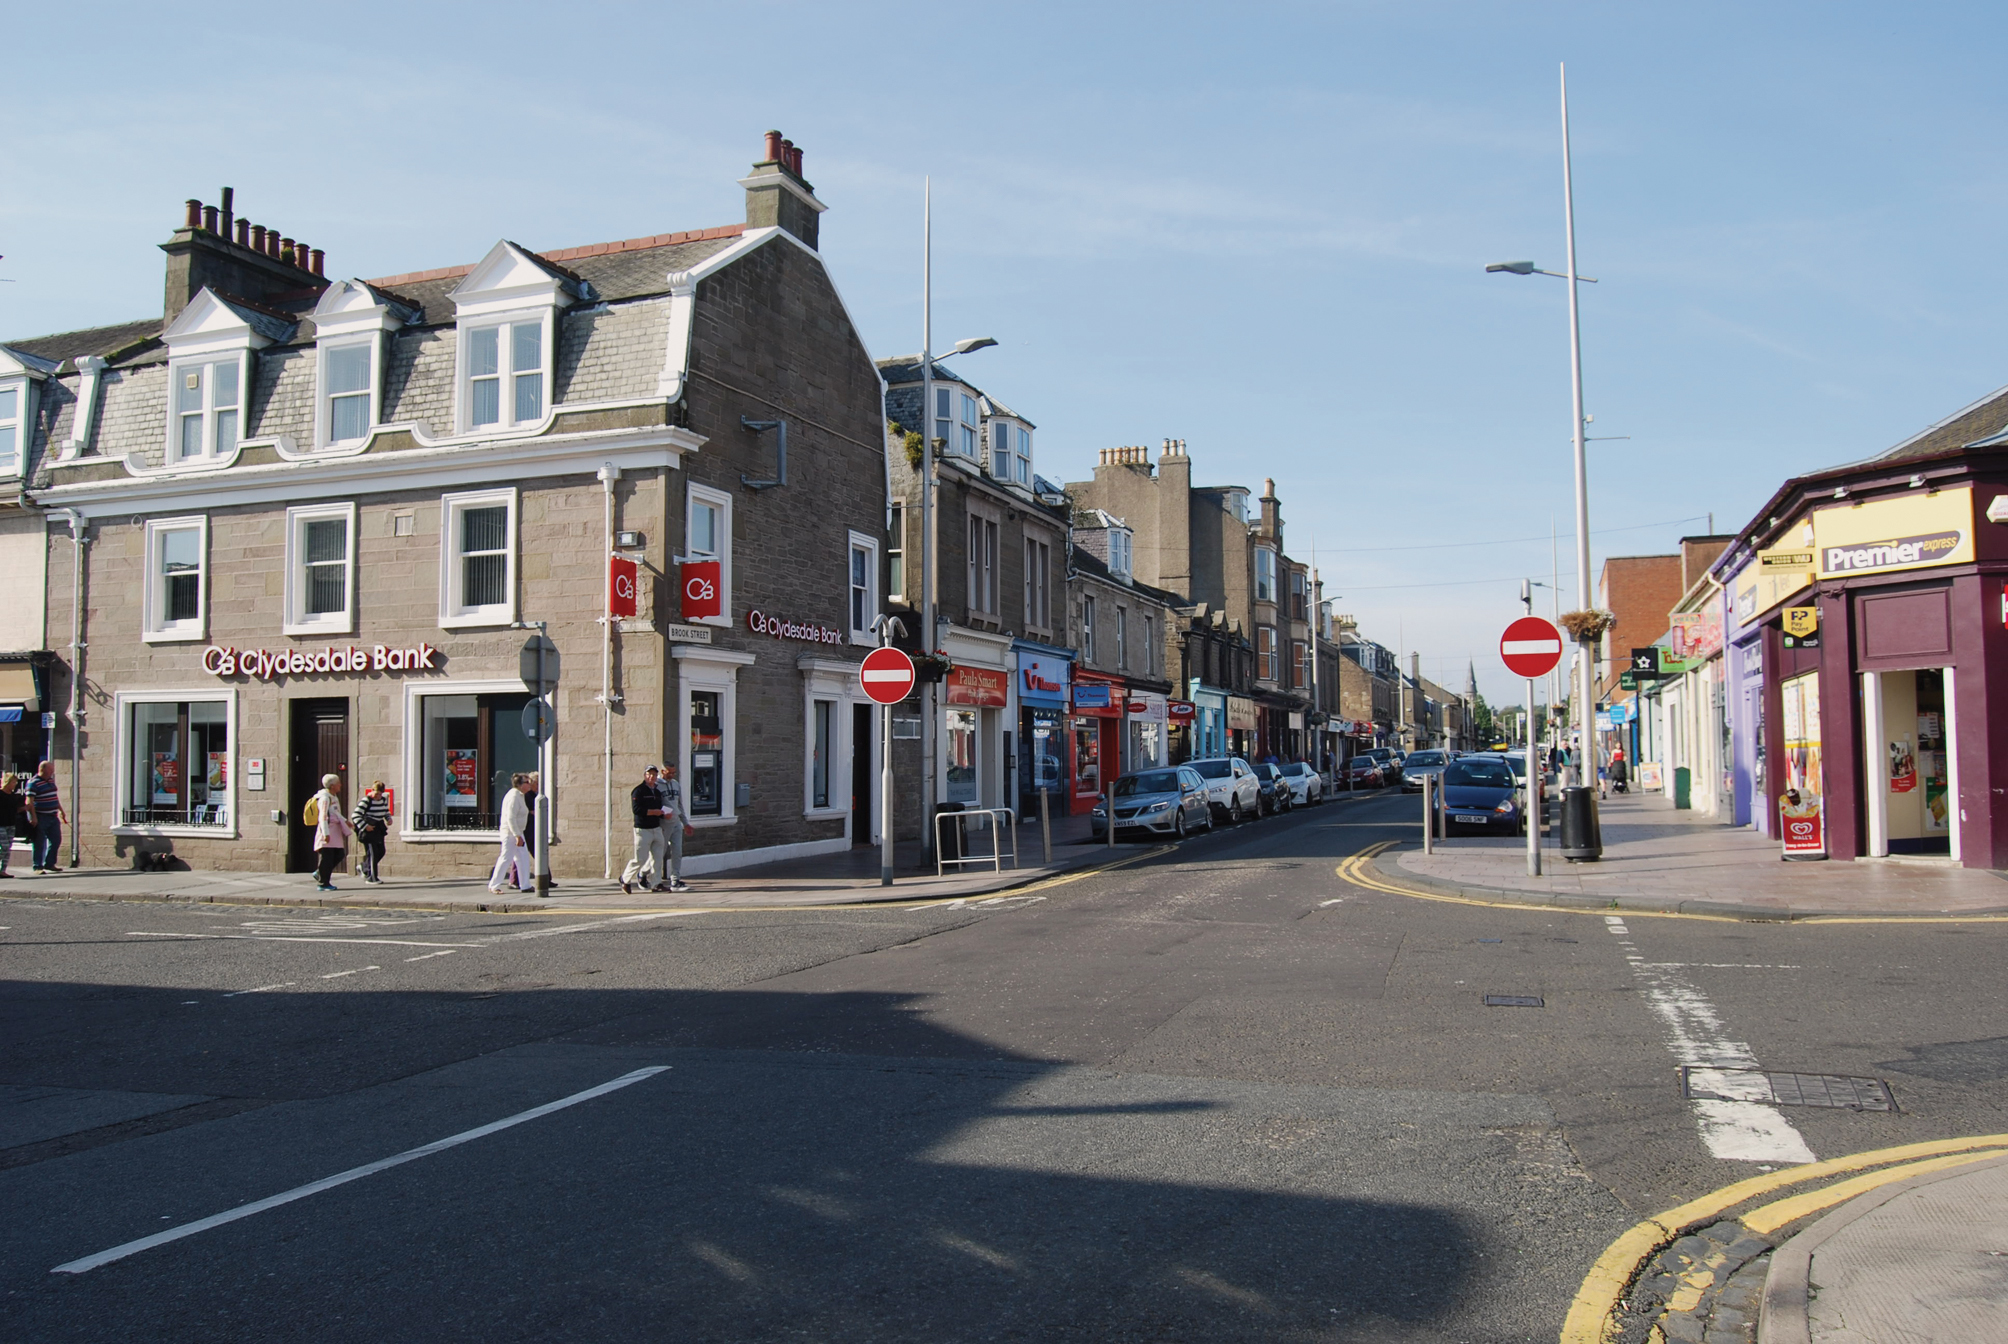 The incident is said to have happened in Brook Street, Broughty Ferry.